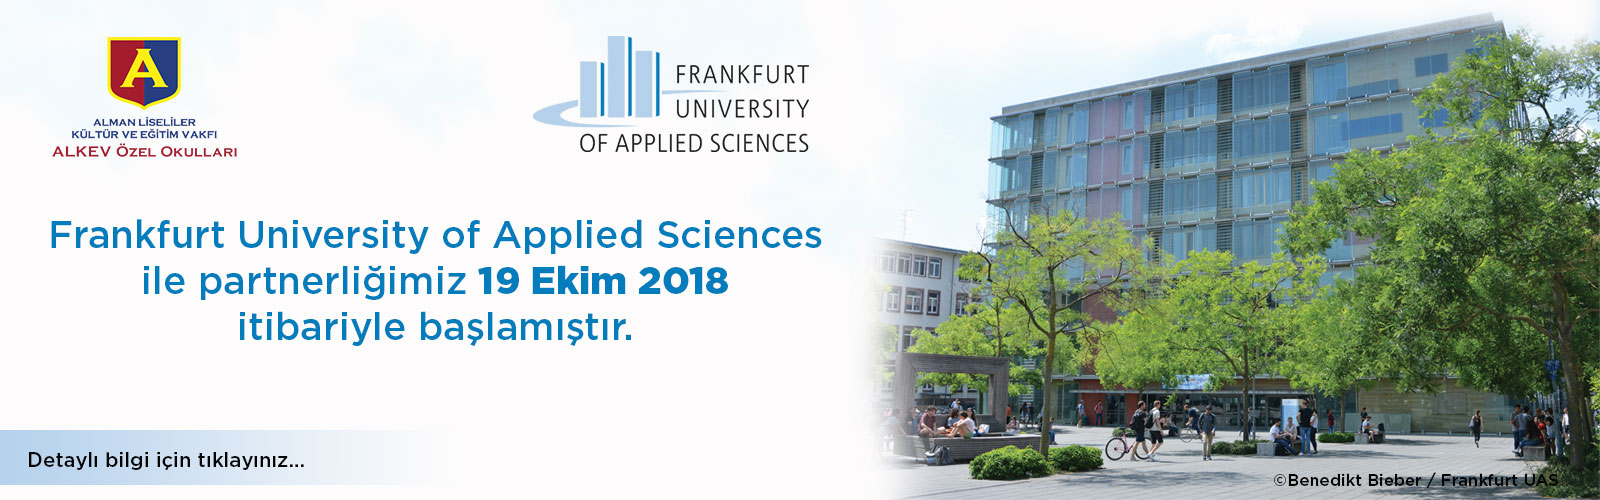 Frankfurt University of Applied Sciences Partnerliği